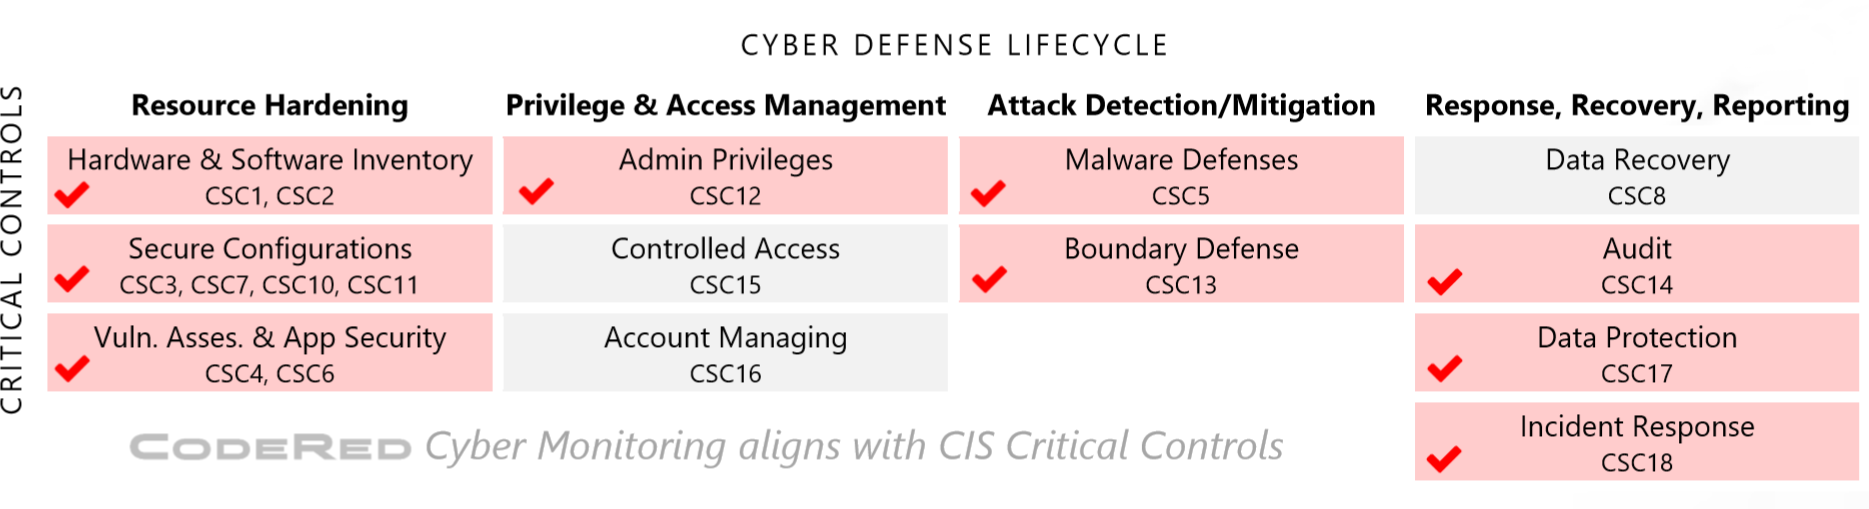 CodeRed Cyber Monitoring aligns with CIS Critical Controls